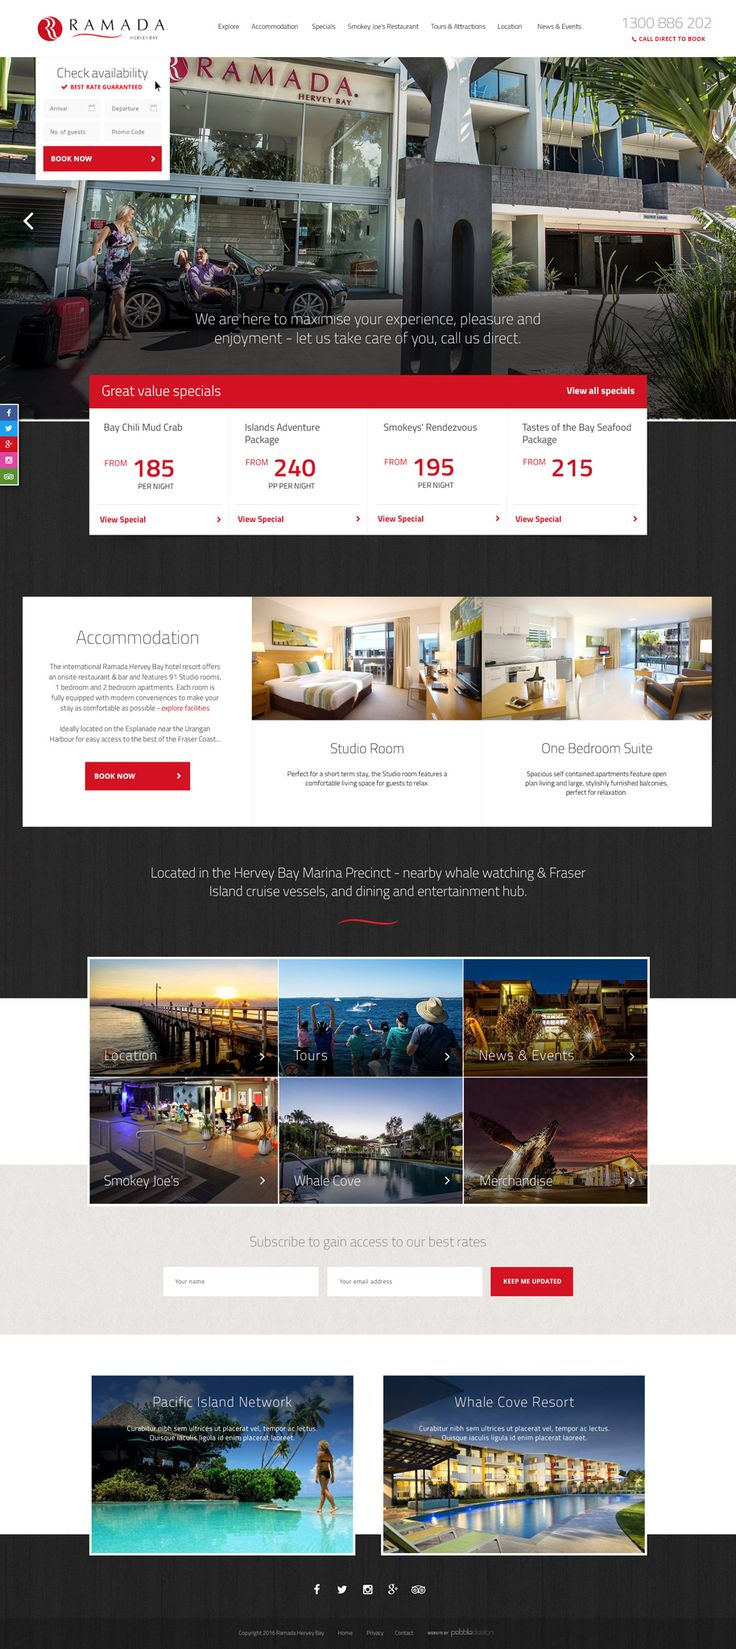 """Ramada Hervey Bay's new website has just recently gone live.  """"A no fuss, genuine, affordable, relaxing business and leisure accommodation experience""""   See more - http://pebbledesign.com/our-work Site - http://www.ramadaherveybay.com.au/  #pebbledesign #hotelwebdesign #hotelwebsitedesign #hotelwebsites"""